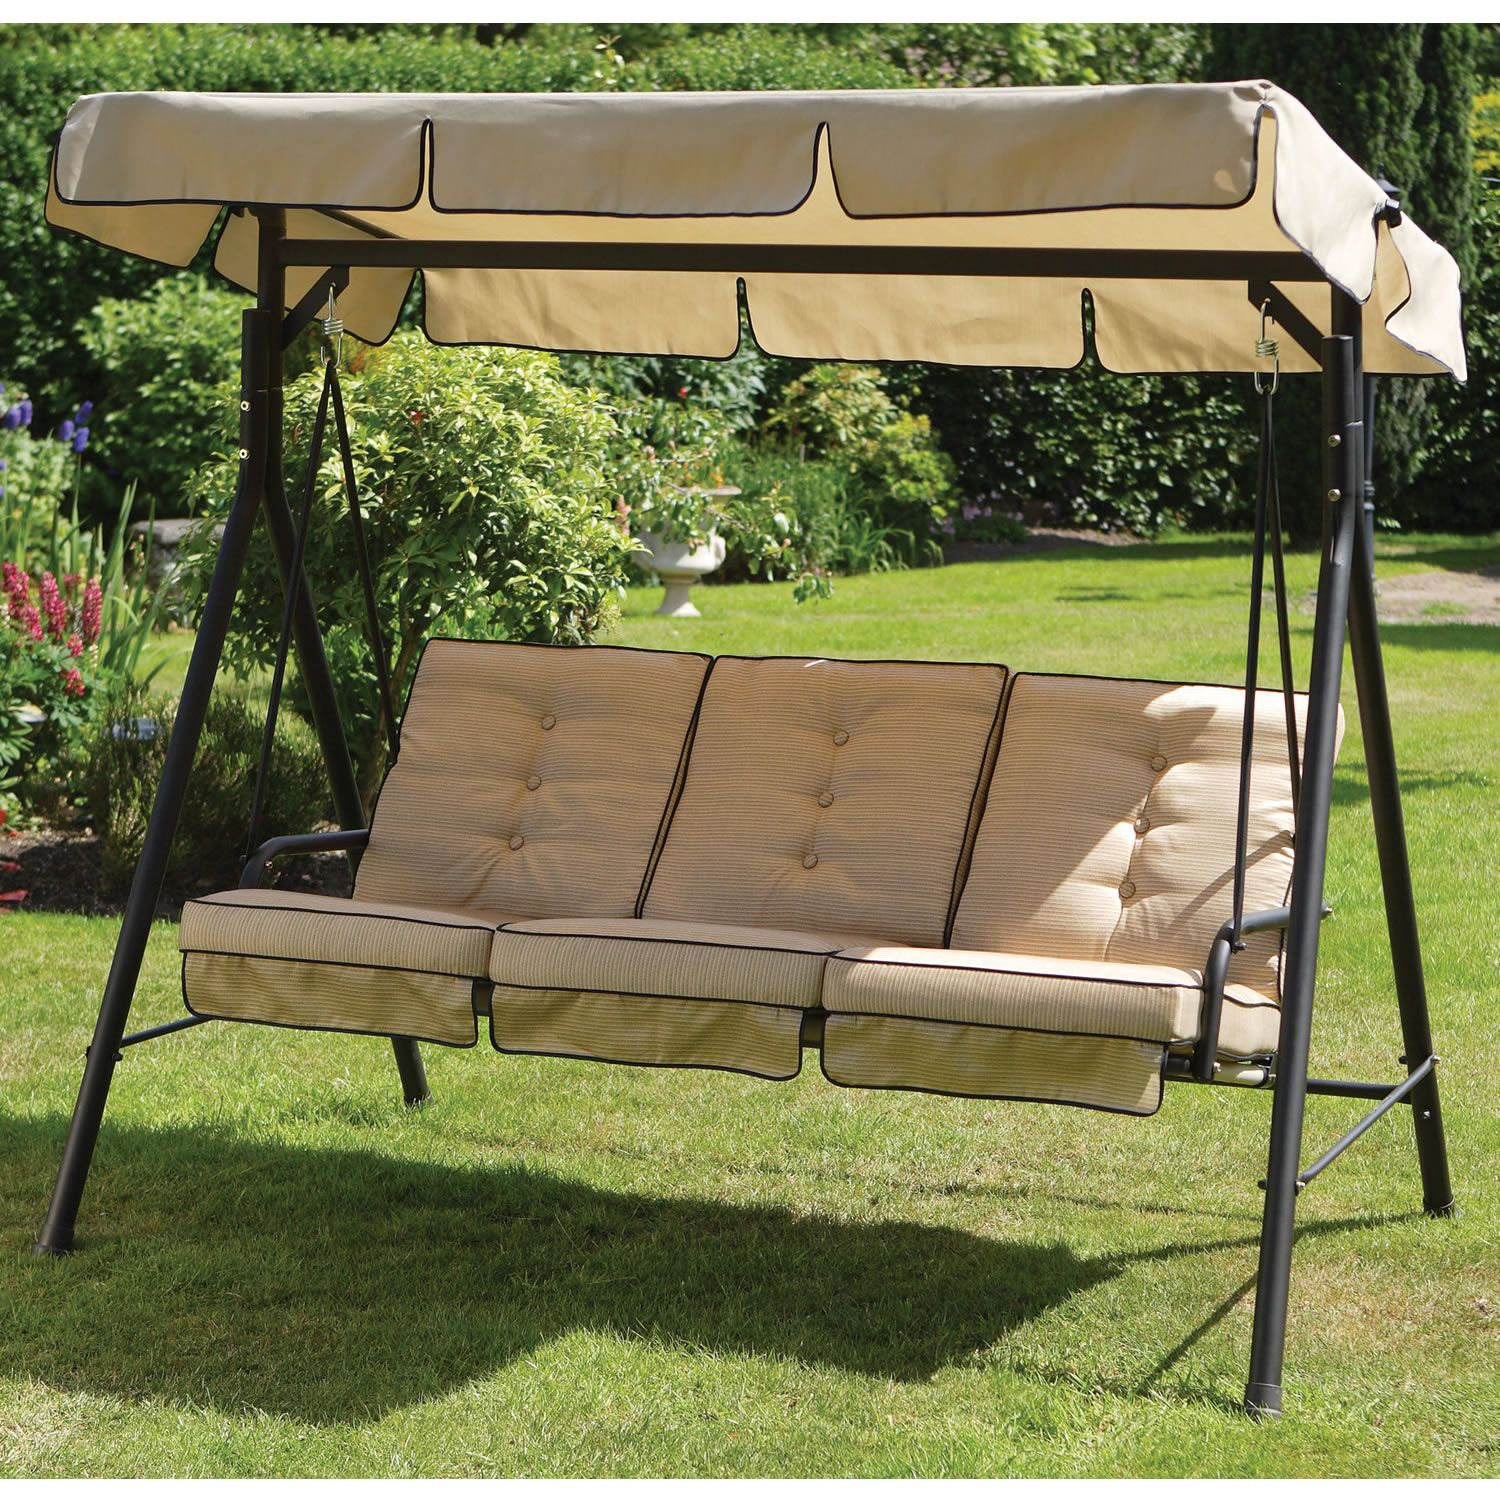 slack jack hammocks swings hammock stands and related accessories are manufactured and exported by slack jack hammocks swings hammock stands and related      rh   pinterest